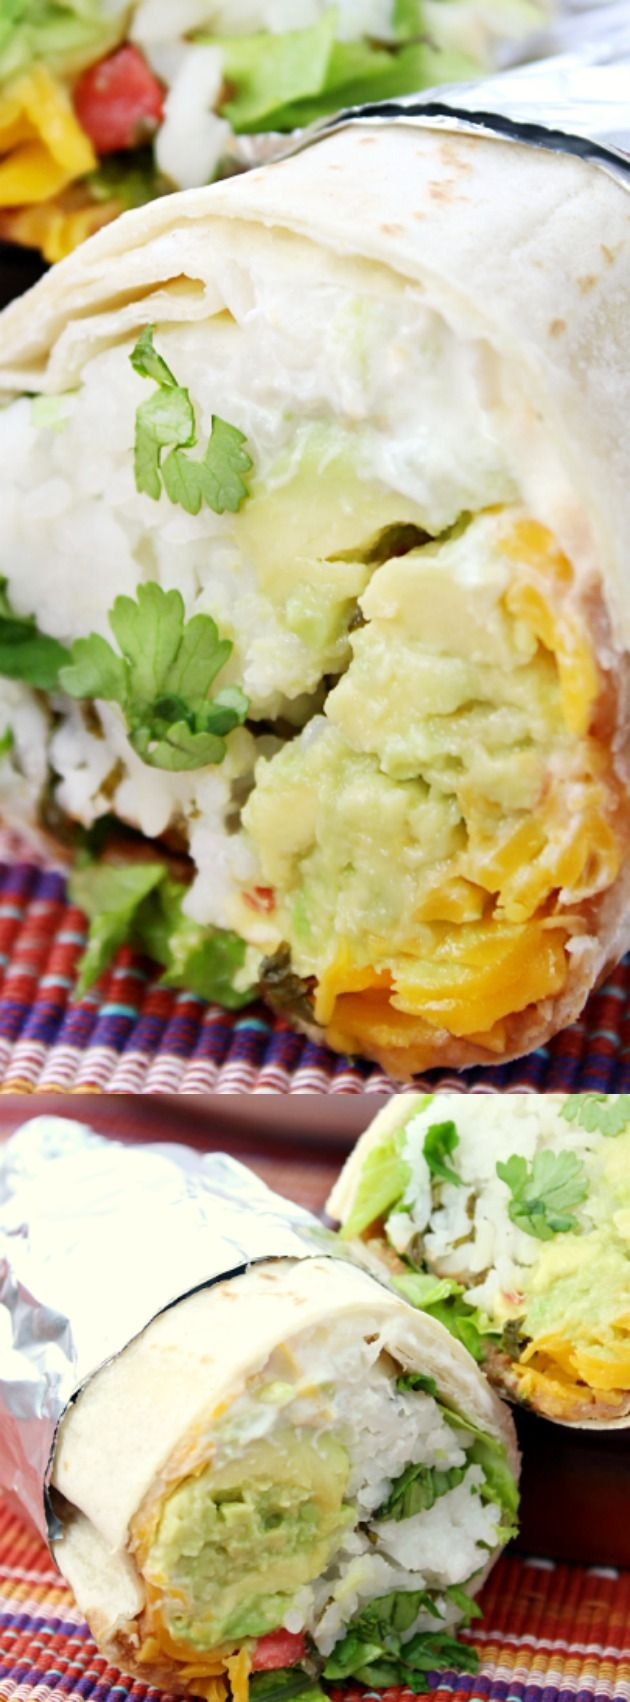 This 7 Layer Burrito from Love Bakes Good Cakes is a great meal for any weeknight, and it's even vegetarian! With cilantro lime rice, guacamole, tomatoes, cheese, sour cream, beans, and lettuce, its a healthier and filling meal that will please everyone.